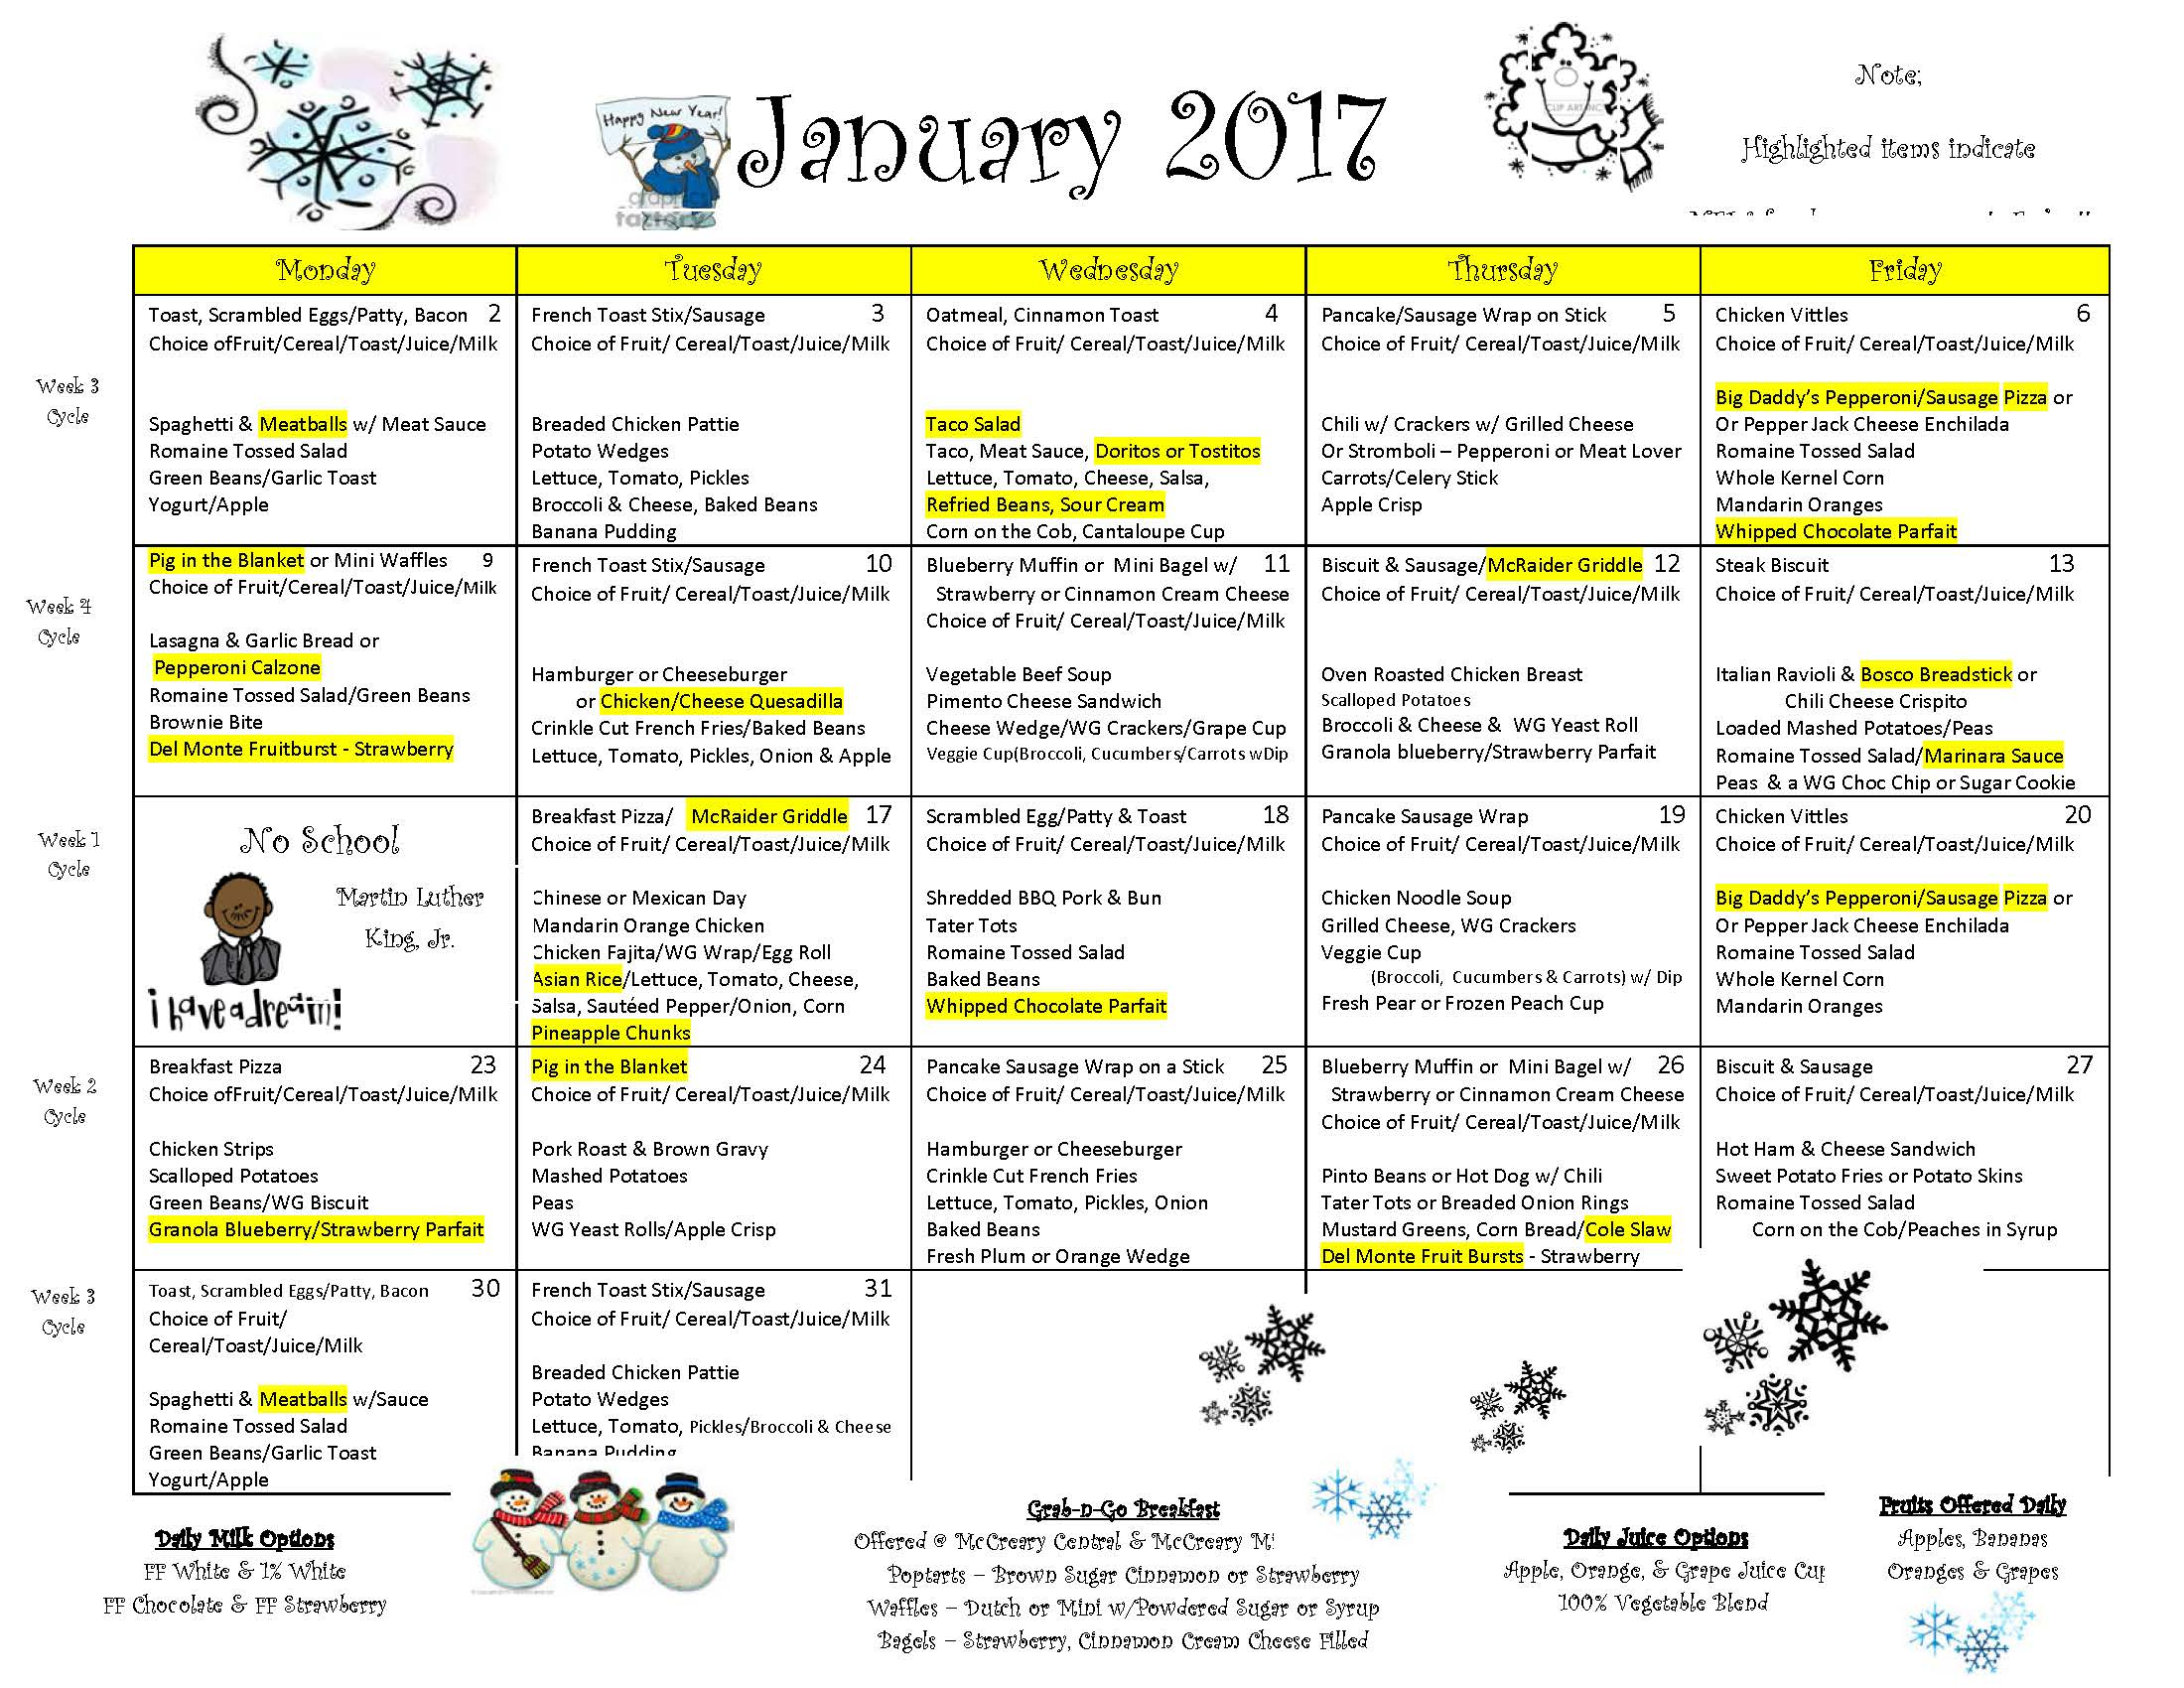 Jan. 2017 Breakfast and Lunch Menu